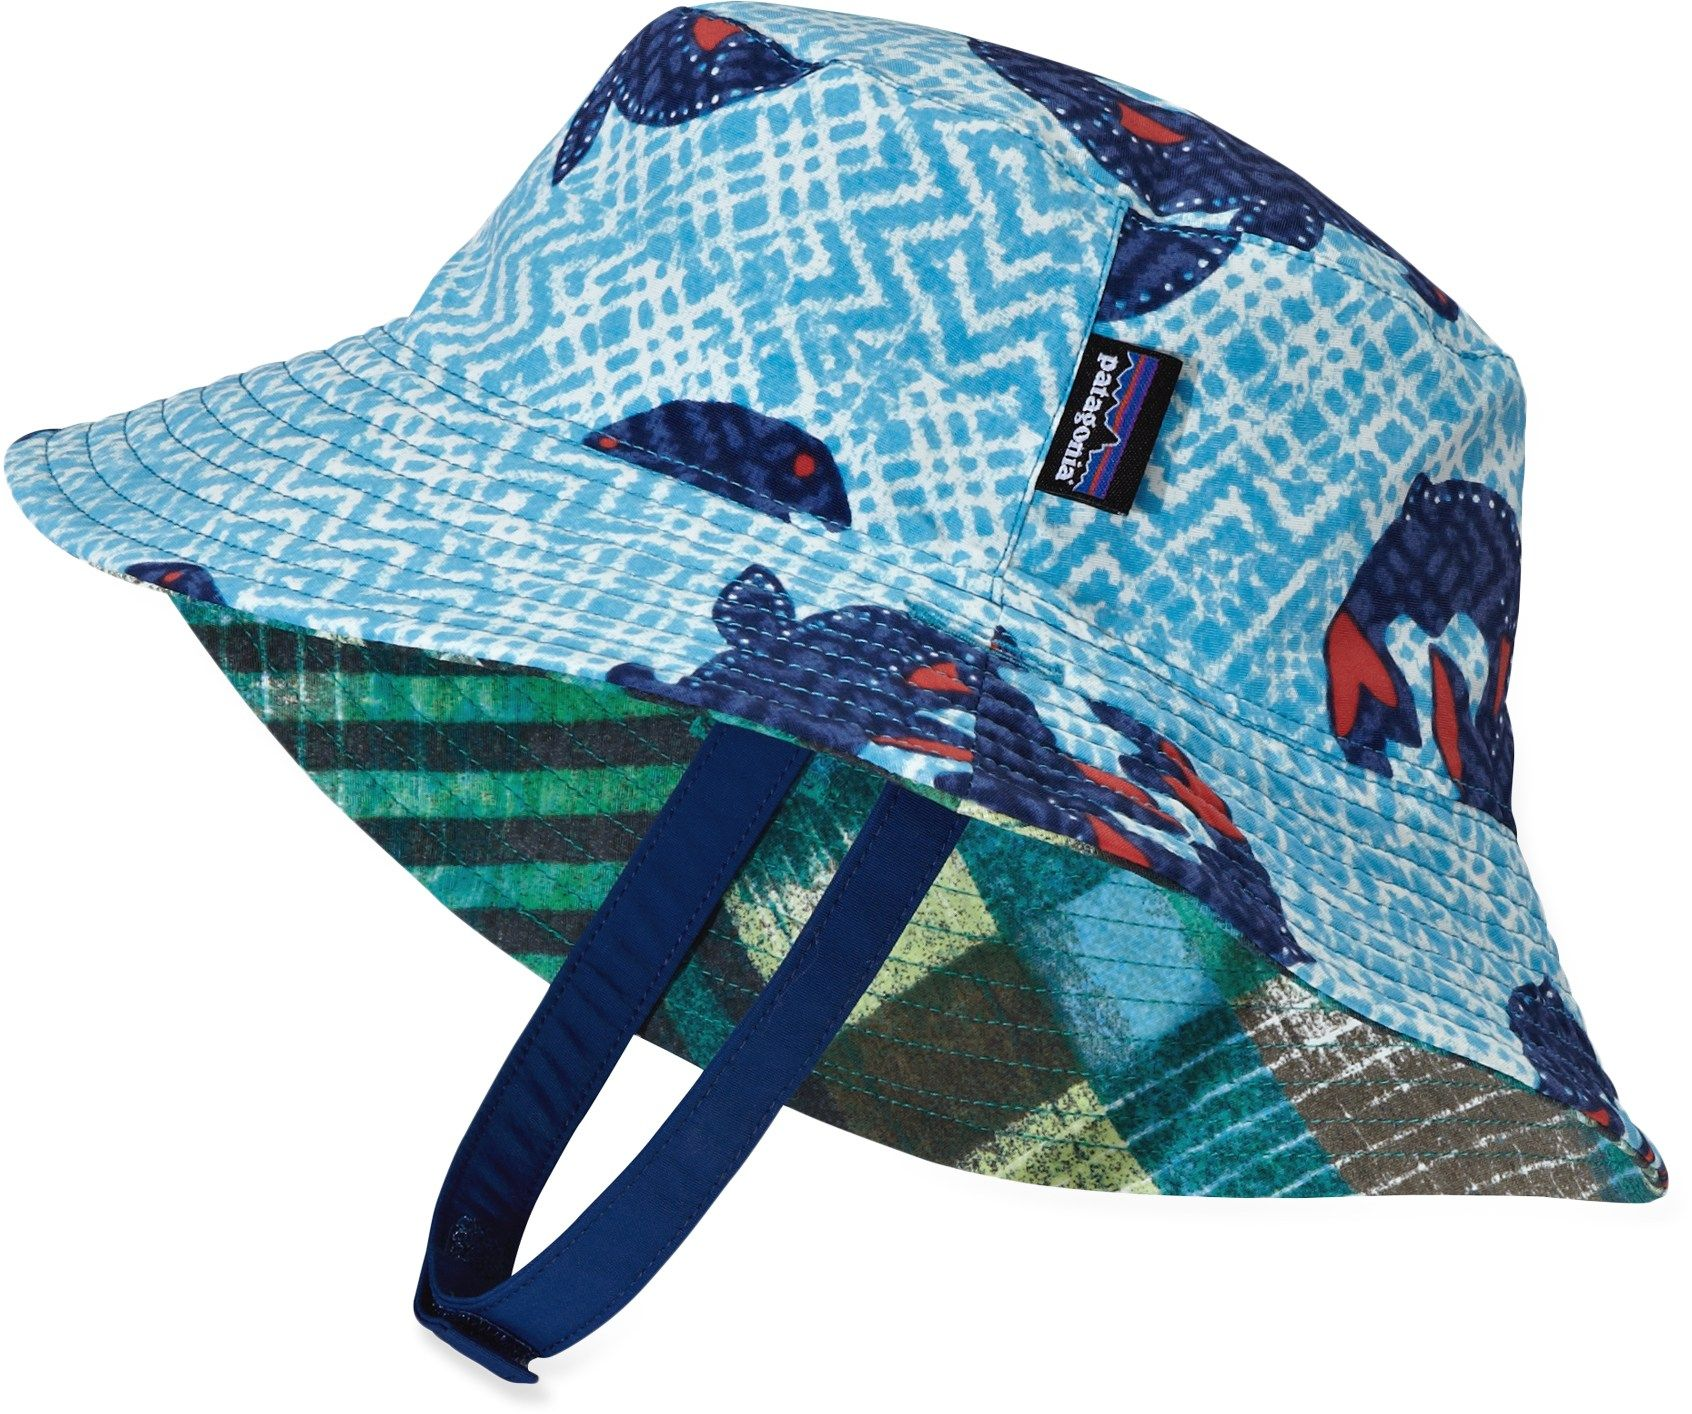 61cb95b3a94 Patagonia Male Reversible Baby Sun Bucket Hat - Infant Toddler Boys ...